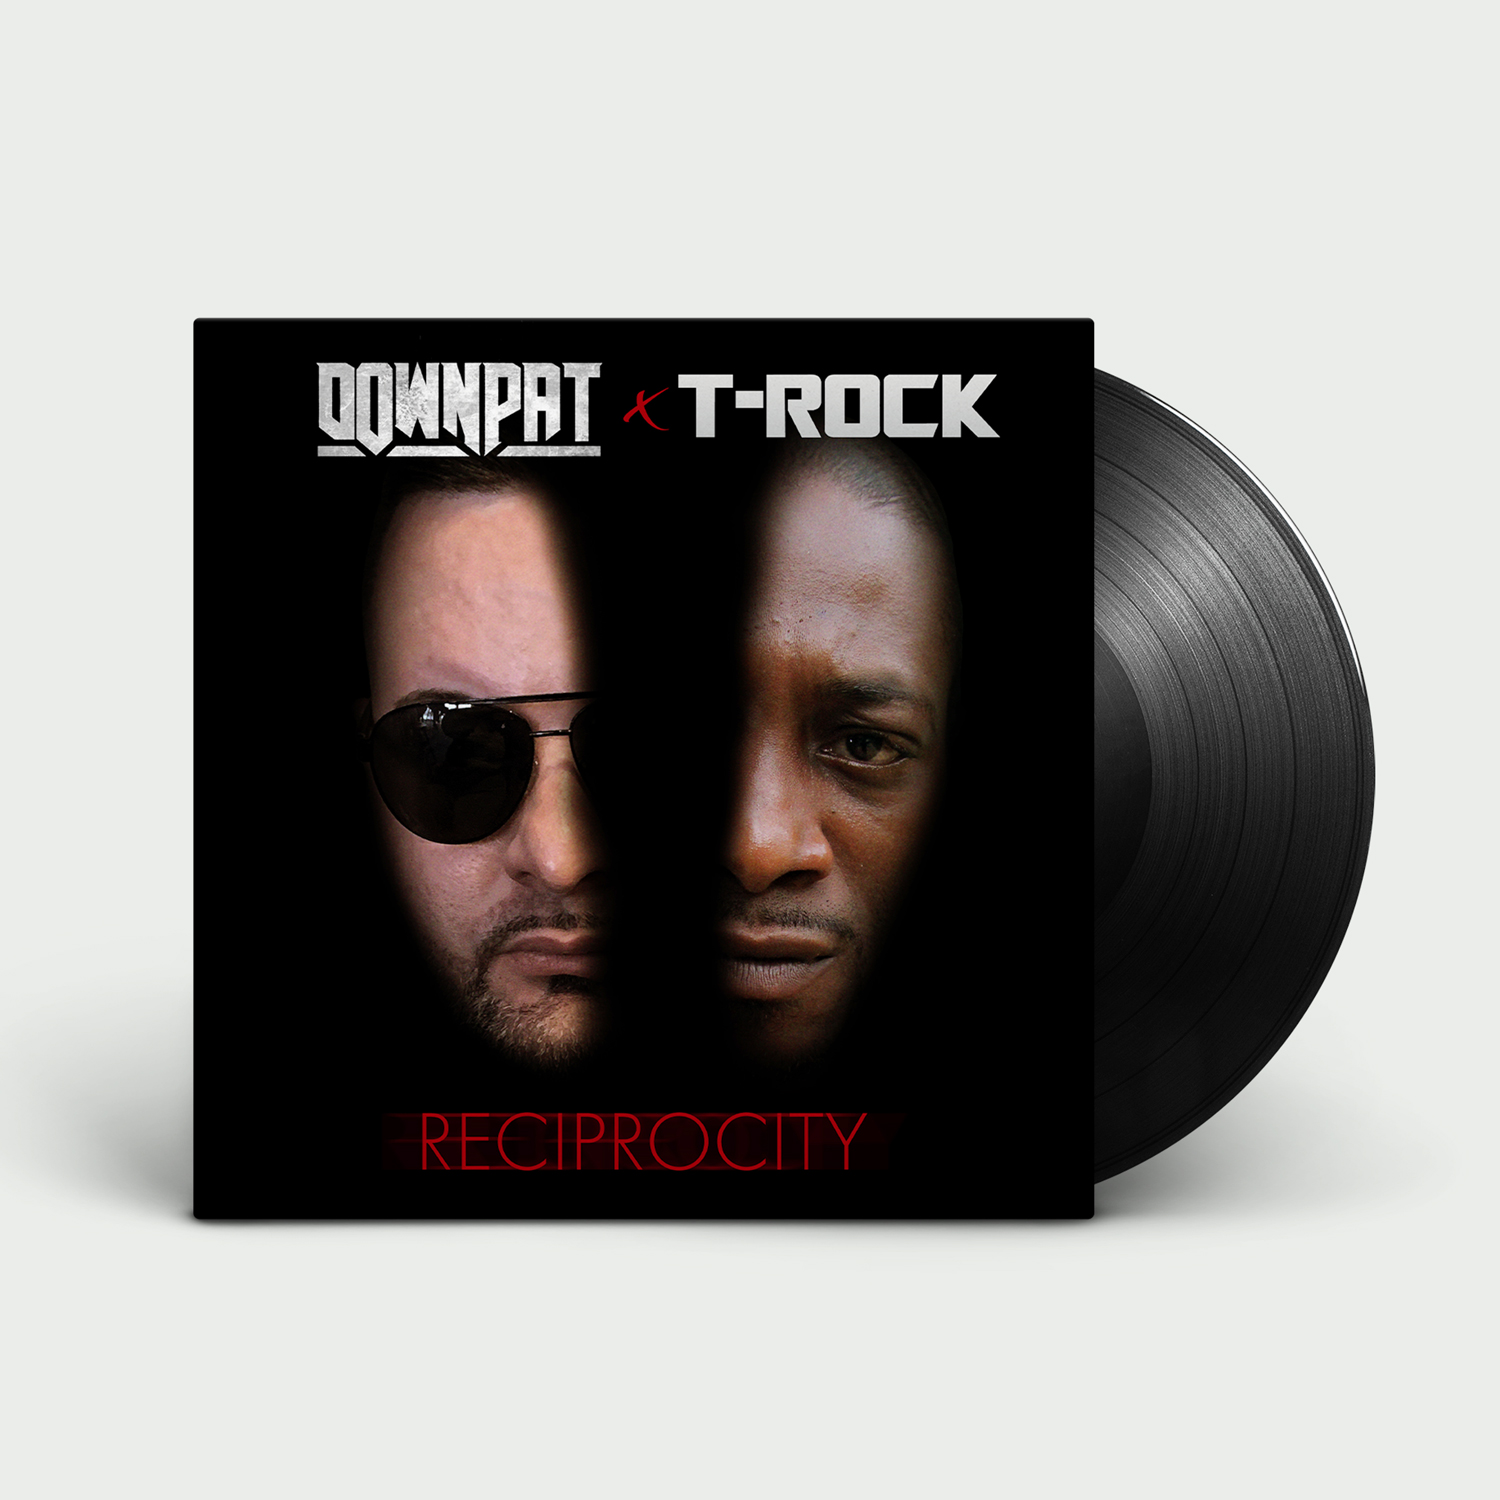 Down Pat & T-Rock - Reciprocity (Vinyl)